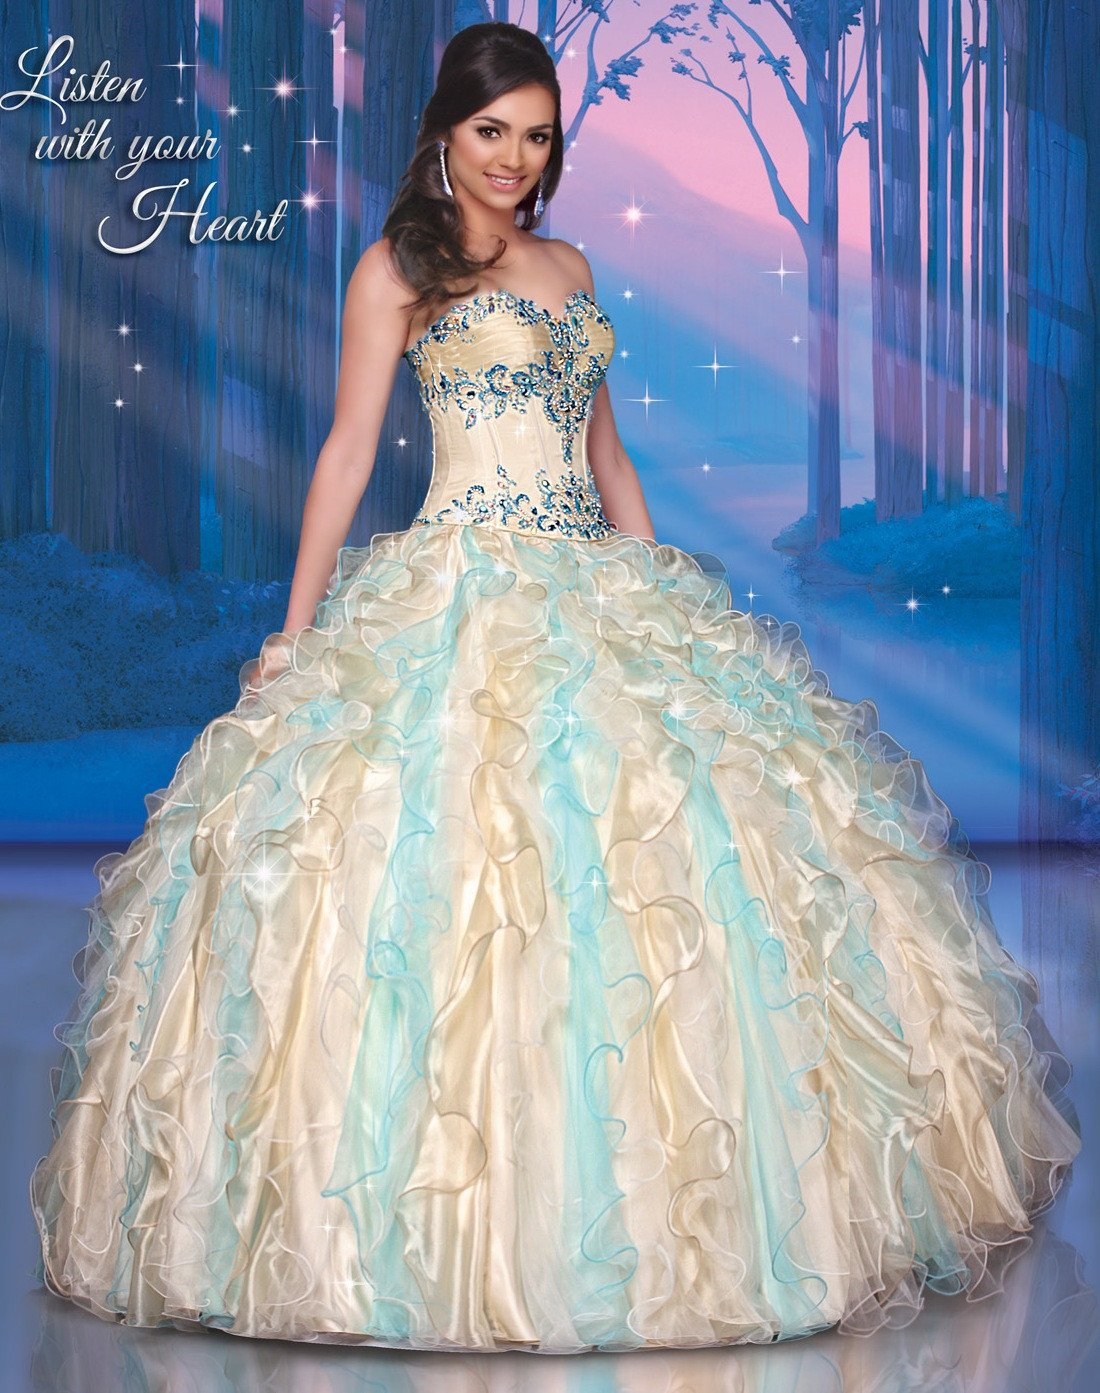 Disney royal ball quinceanera dress pocahontas style in